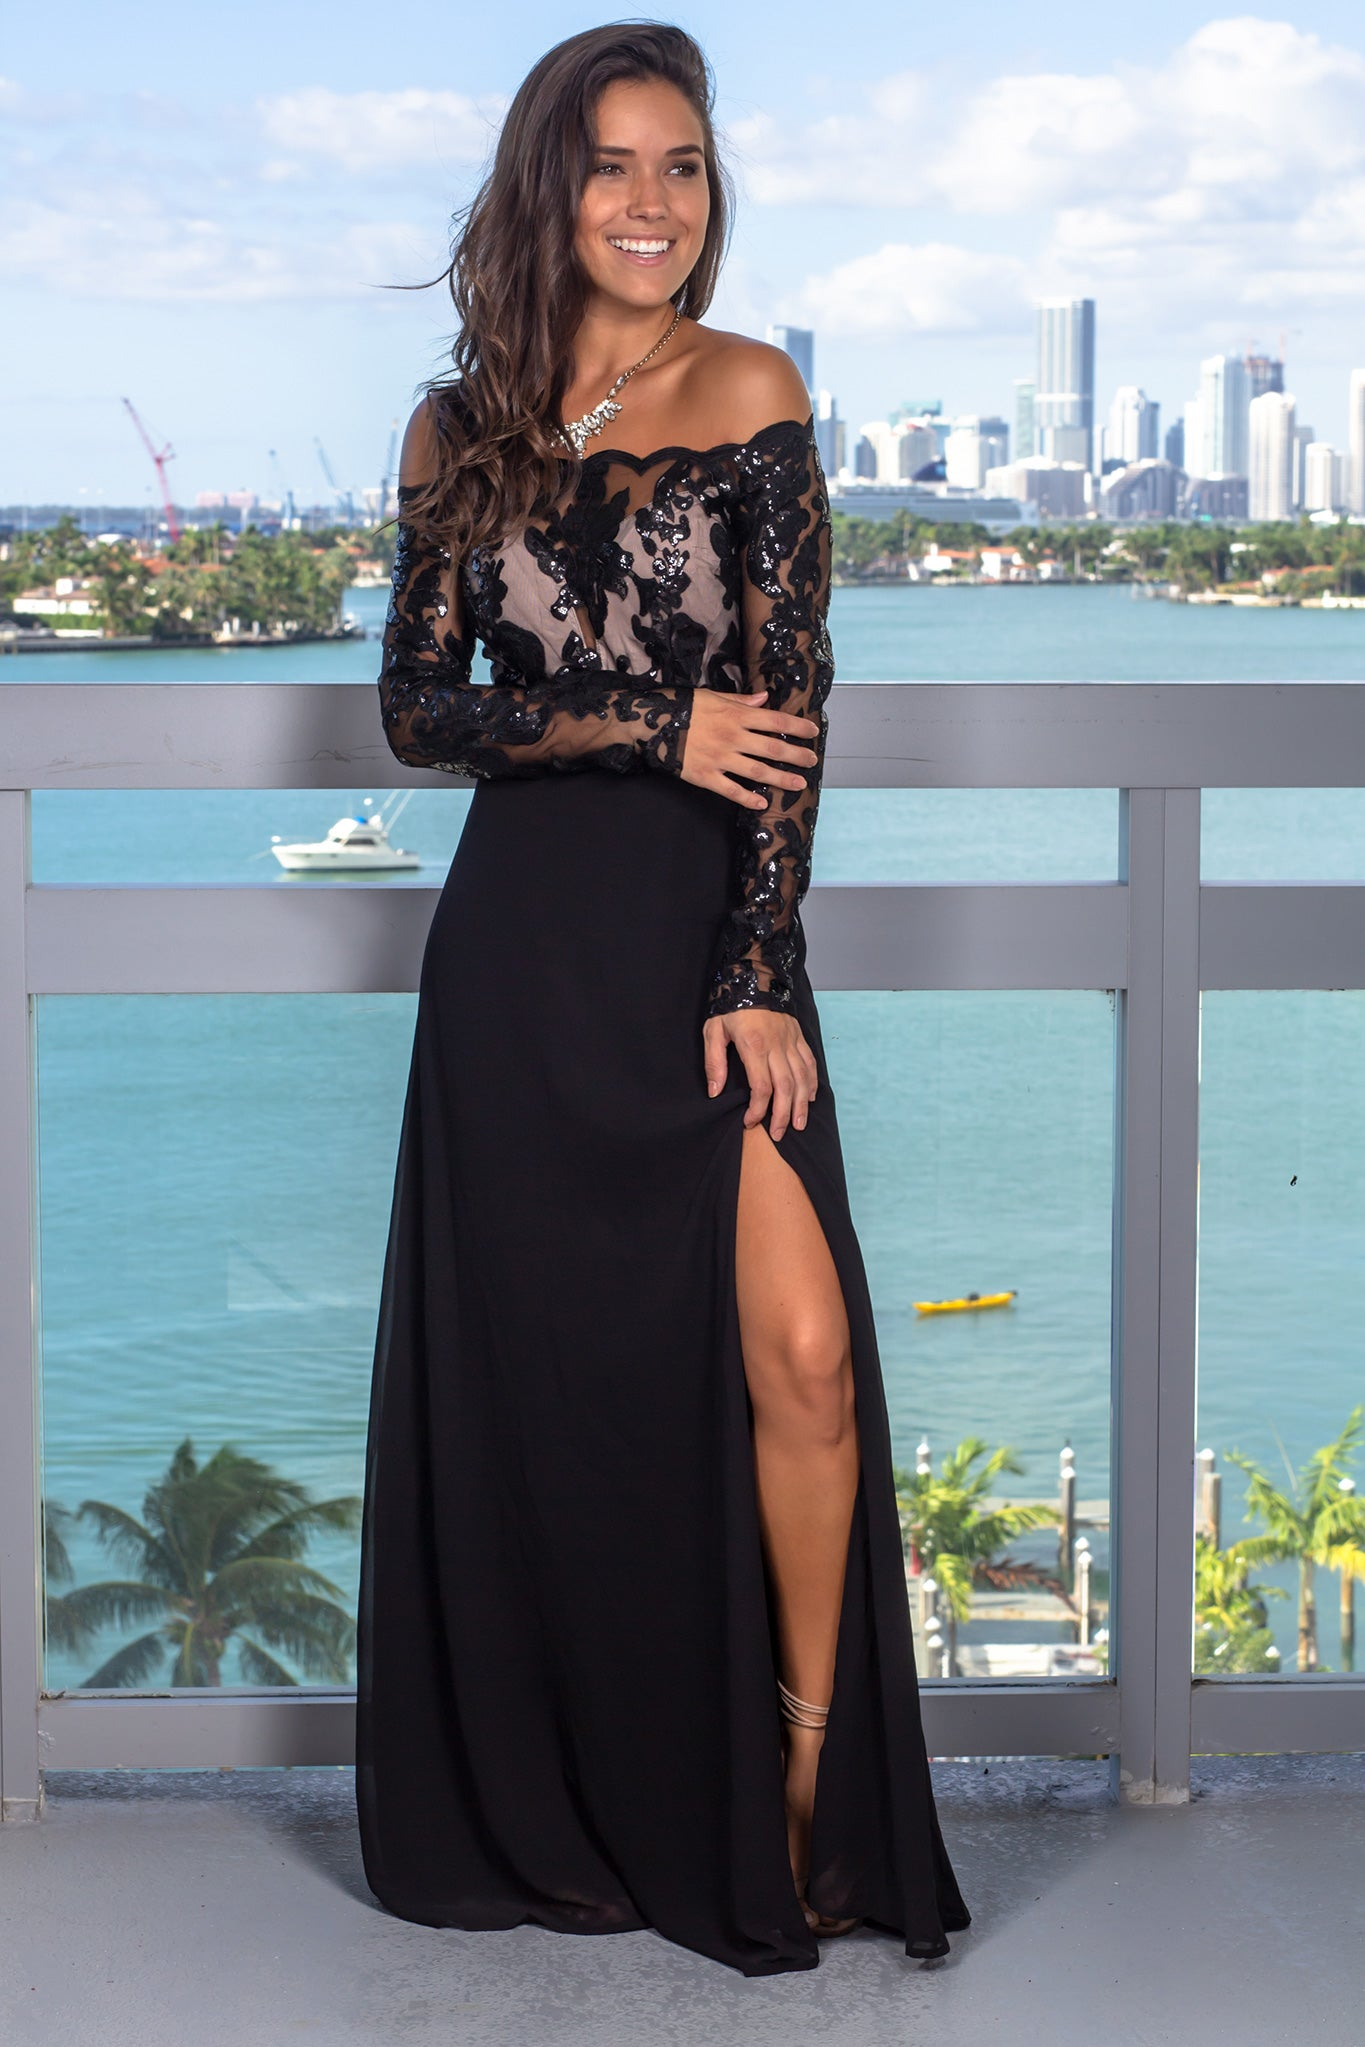 Black and Nude Sequin Top Maxi Dress with Long Sleeves